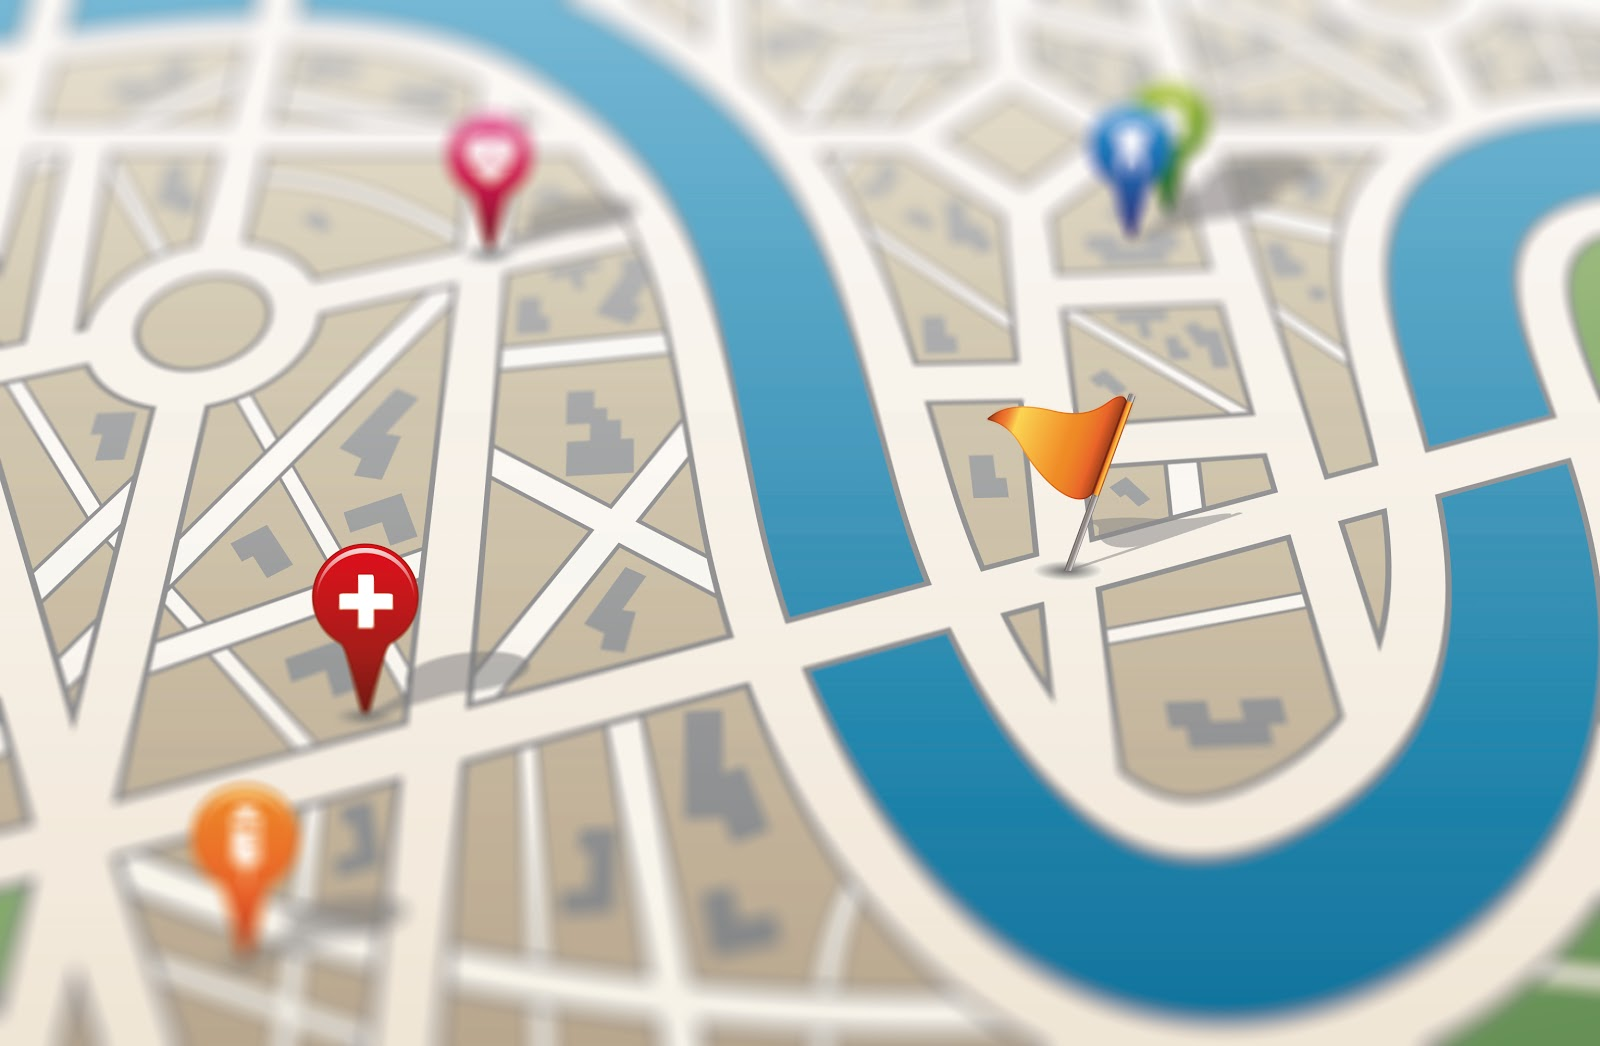 5 Smart Hacks To Know the Location of A Smart Phone for Free